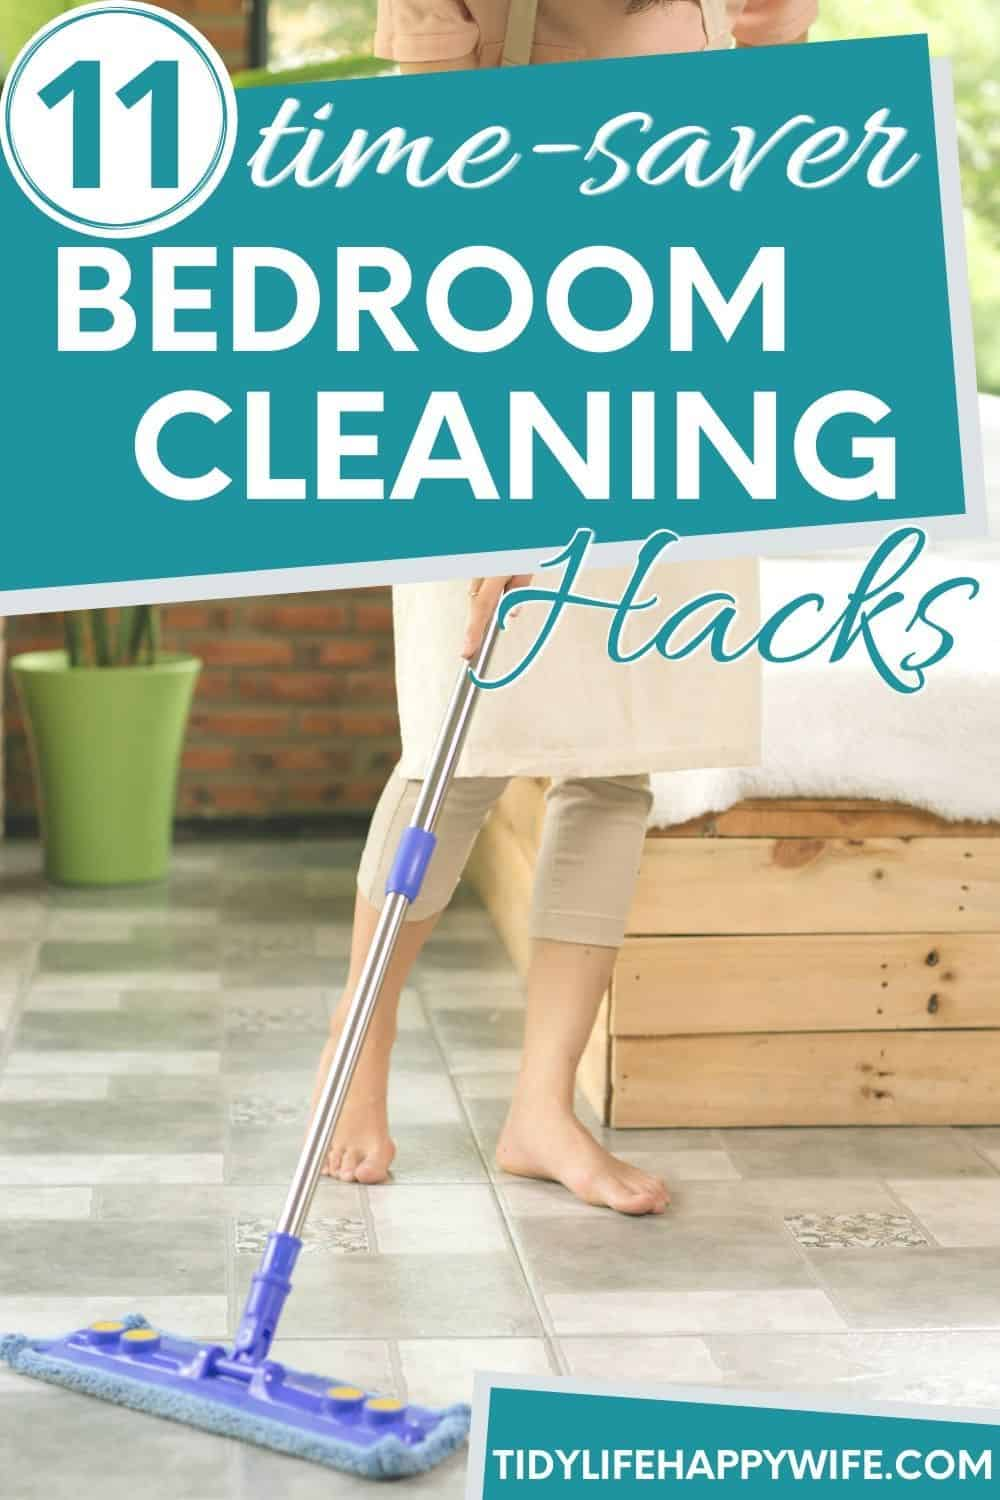 11 quick and easy bedroom cleaning hacks to keep your bedroom clean and tidy all the time. From freshening your bed to cleaning your windows, there's a bedroom cleaning tip to fit every need. How to freshen your matress. Cleaning tips for dusty blinds and cloth surfaces. Tricks for eliminating mold and mildew, and how to freshen the entire room. Try these bedroom cleaning hacks to get your room cleaned right now. via @Tidylifehappywife